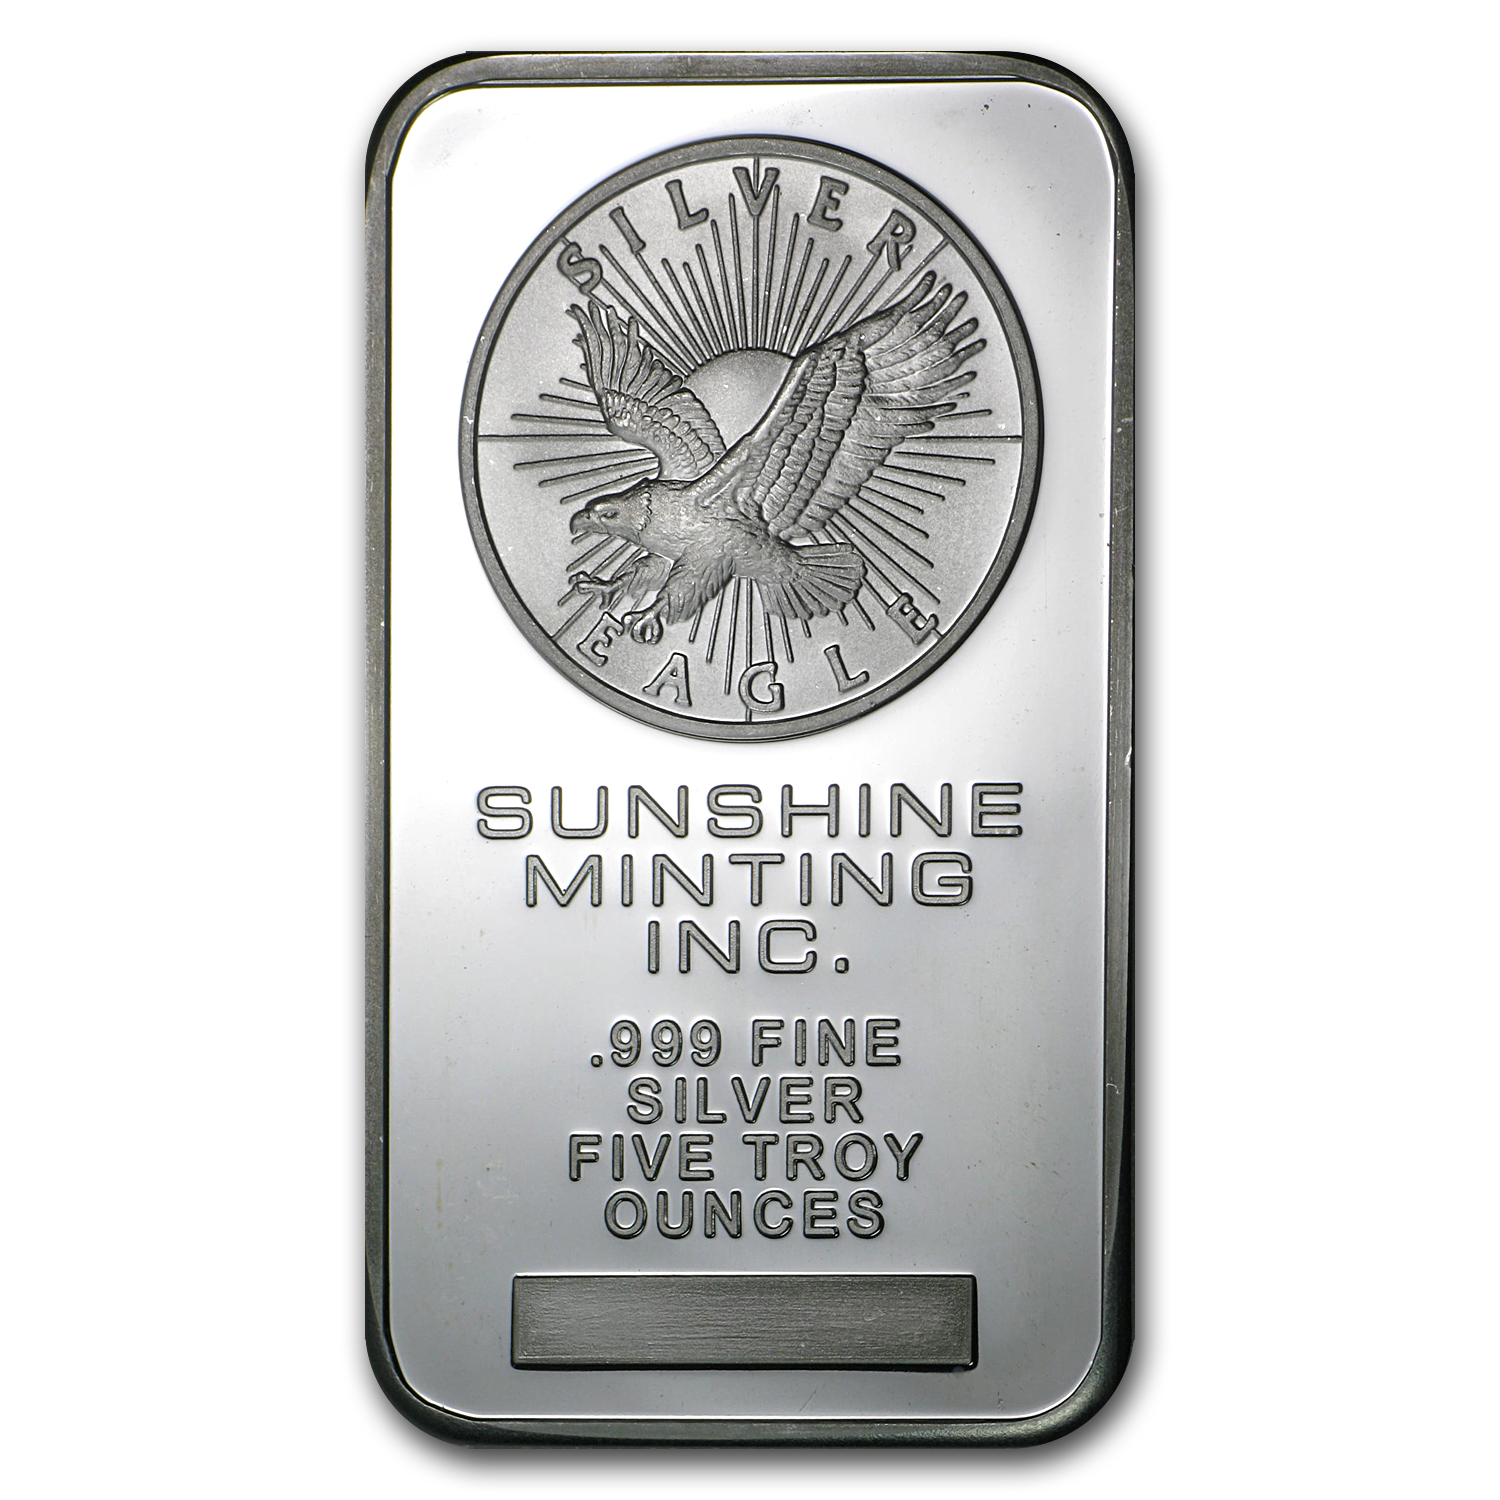 5 oz Silver Bars - Sunshine (Original)